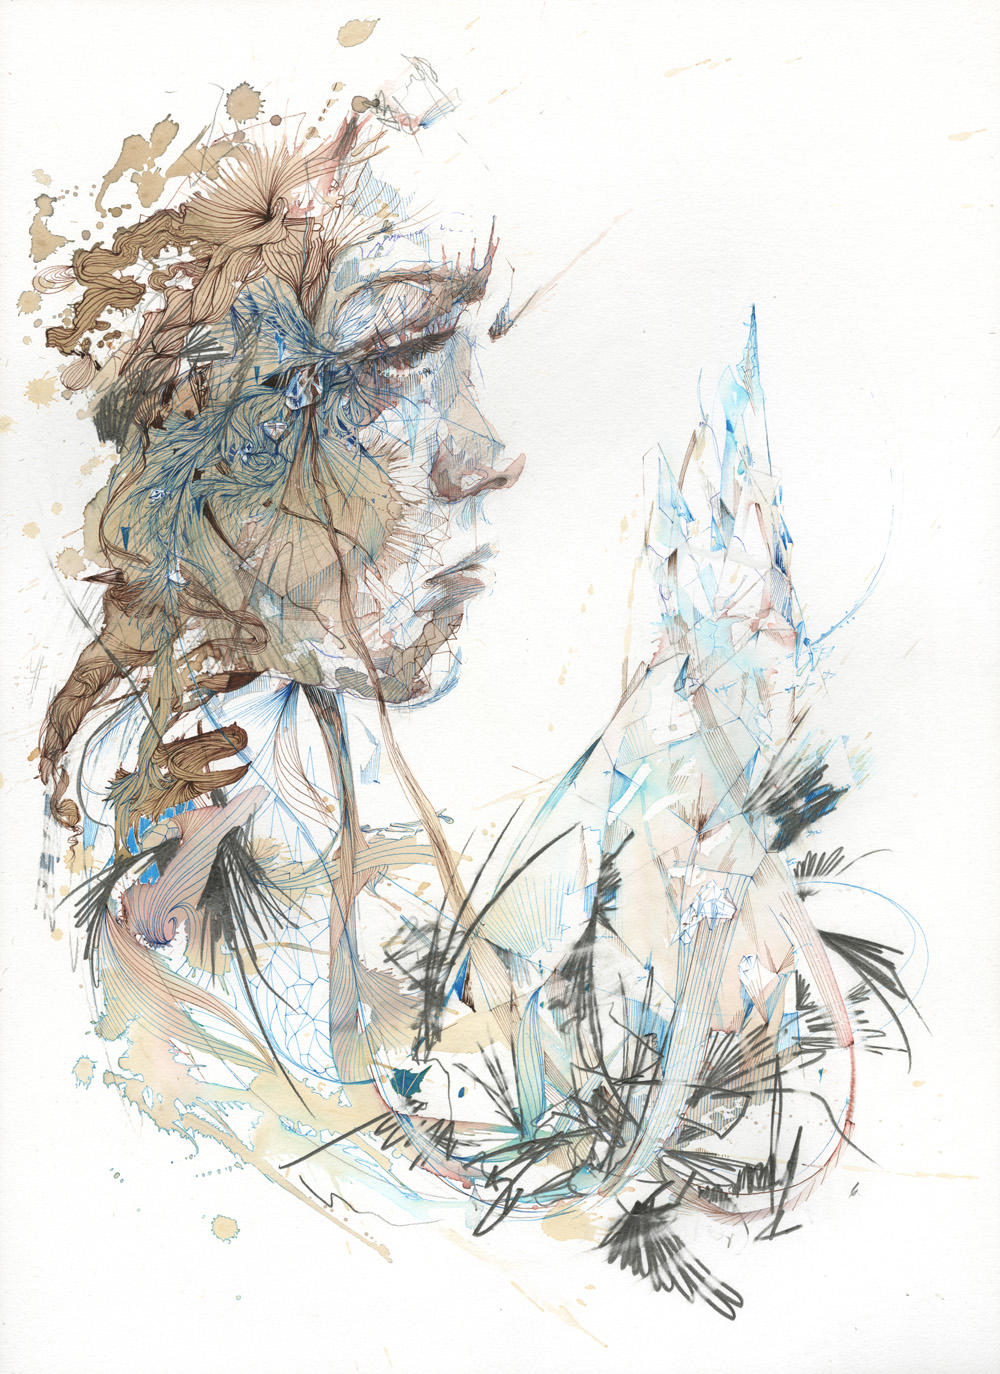 Refraction by Carne Griffiths